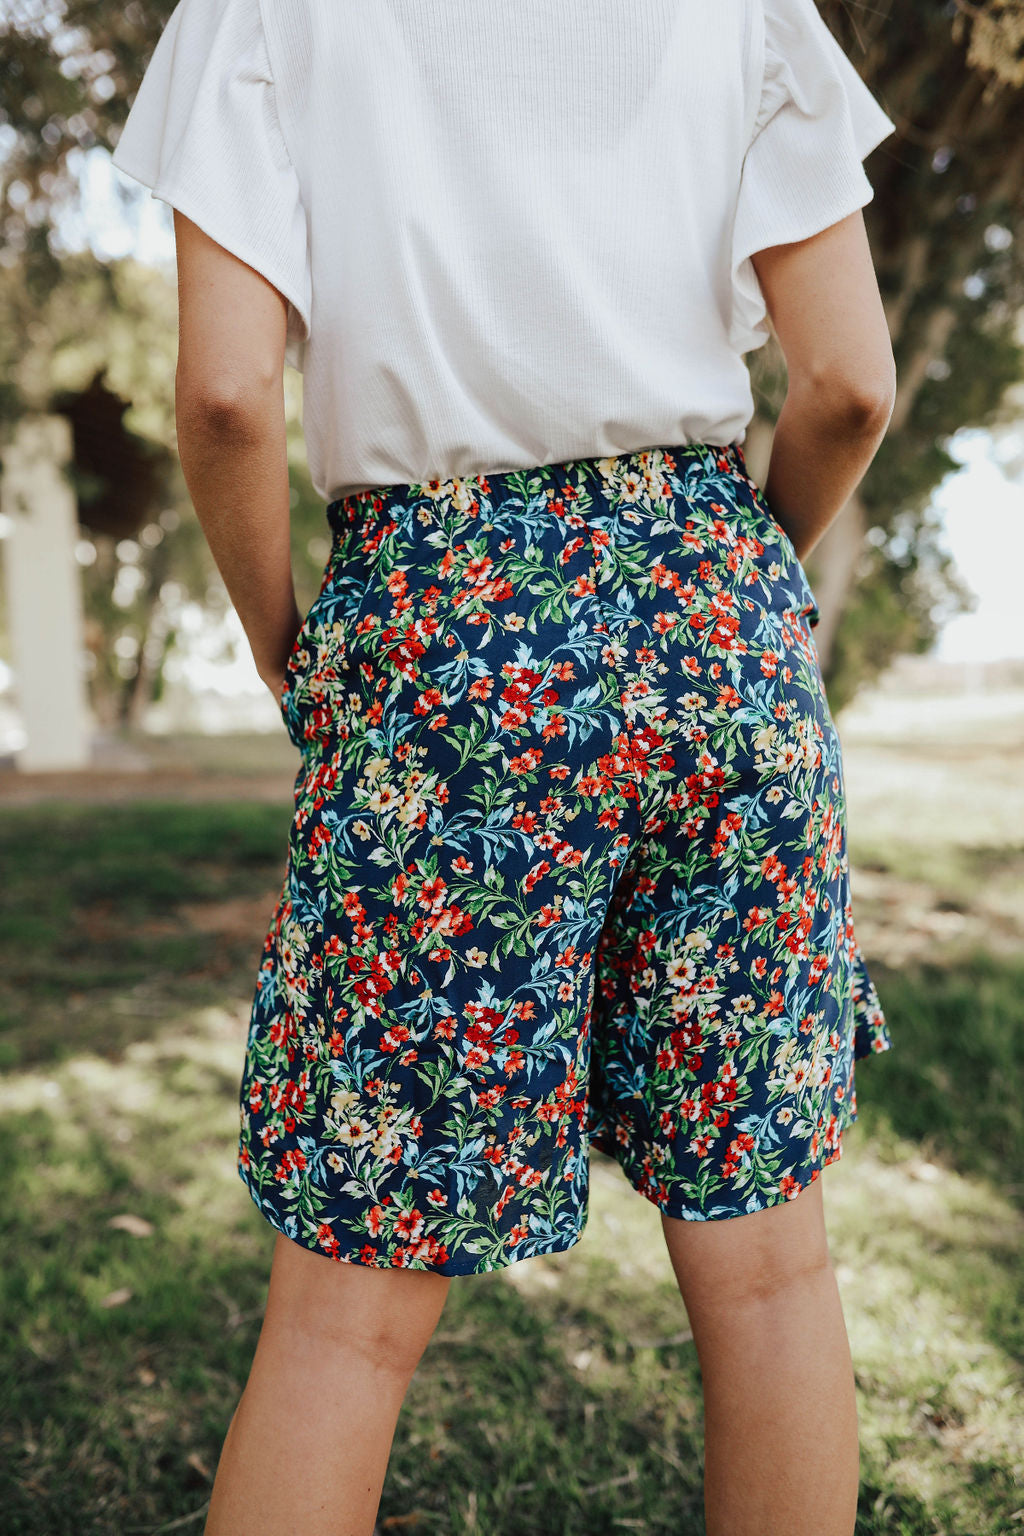 THE SHYLER CASUAL ELASTIC SHORTS IN BLUE FLORAL